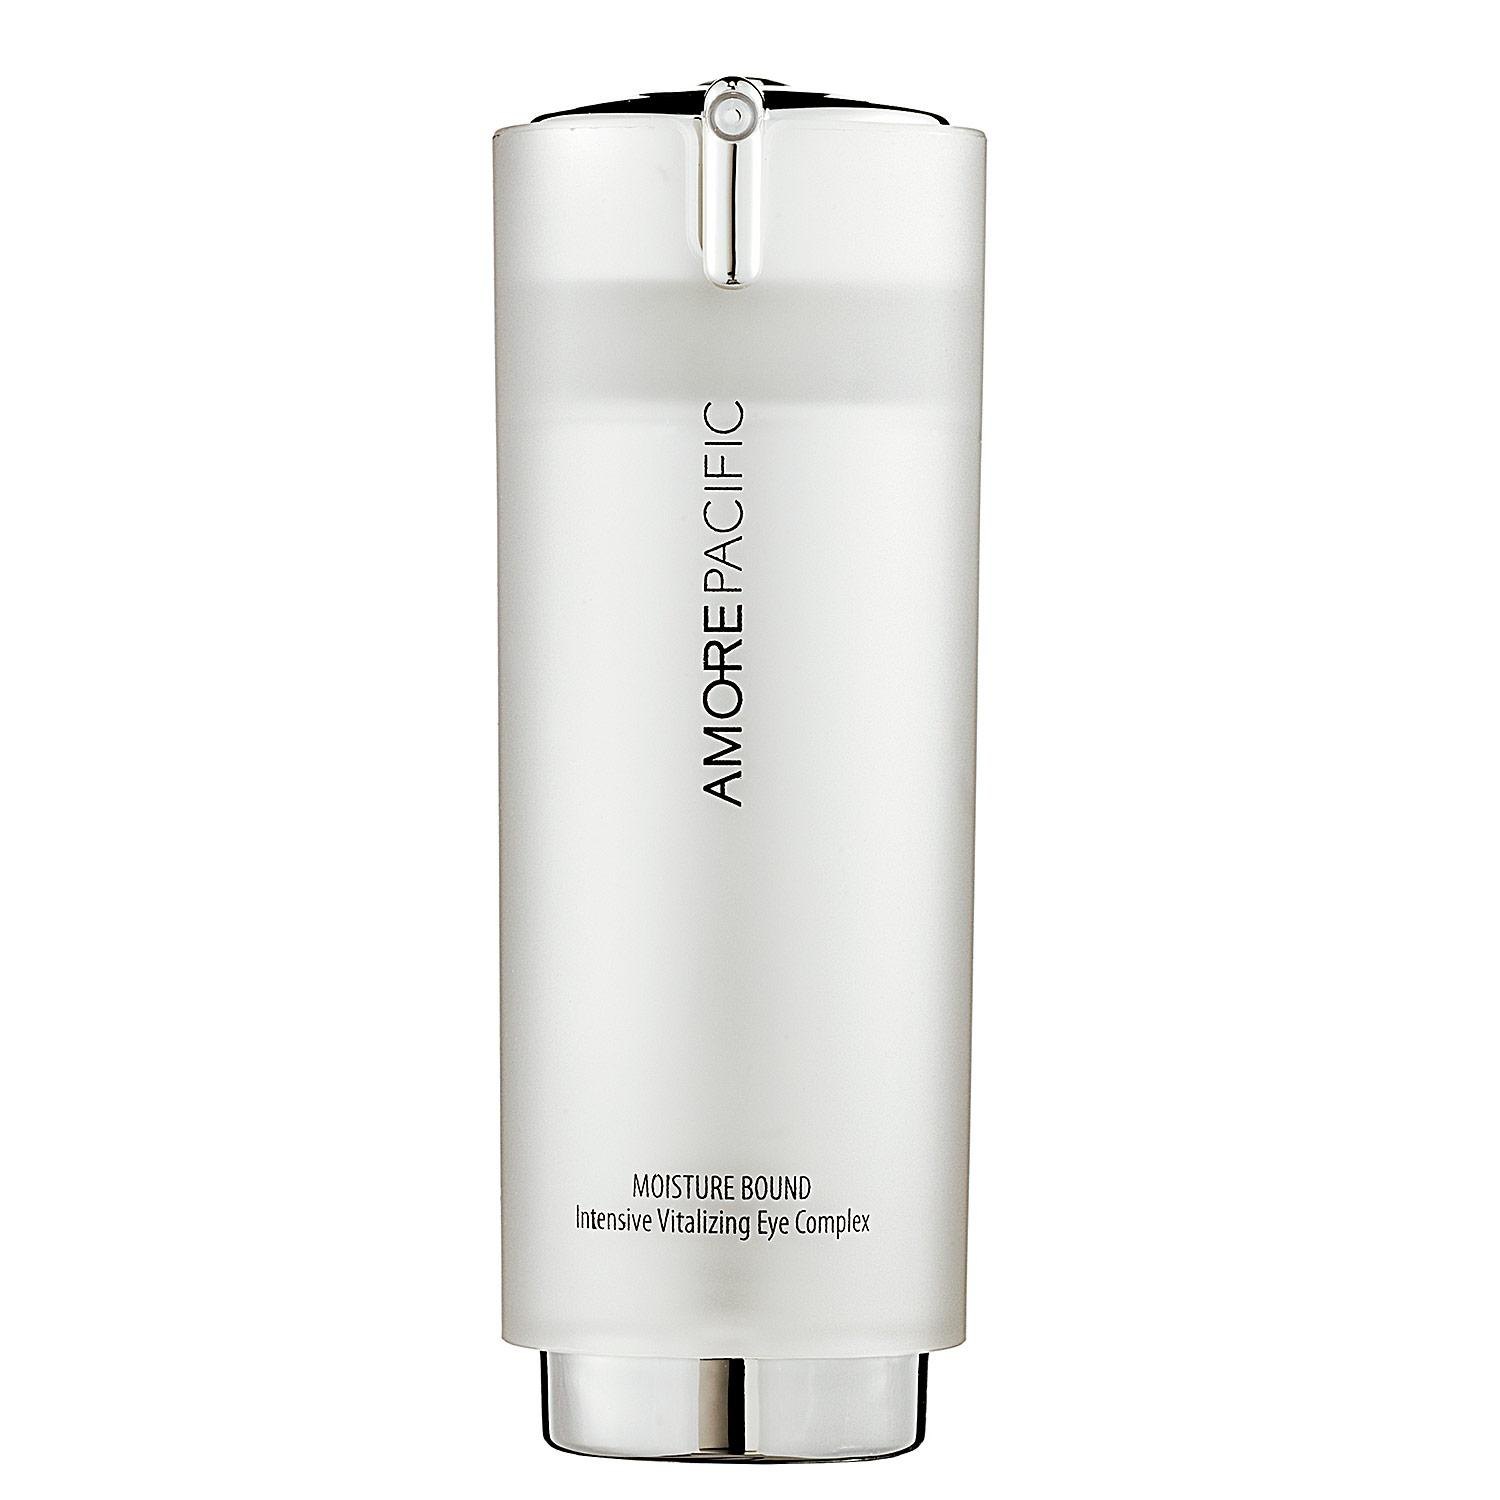 Moisture Bound Intensive Vitalizing Eye Complex